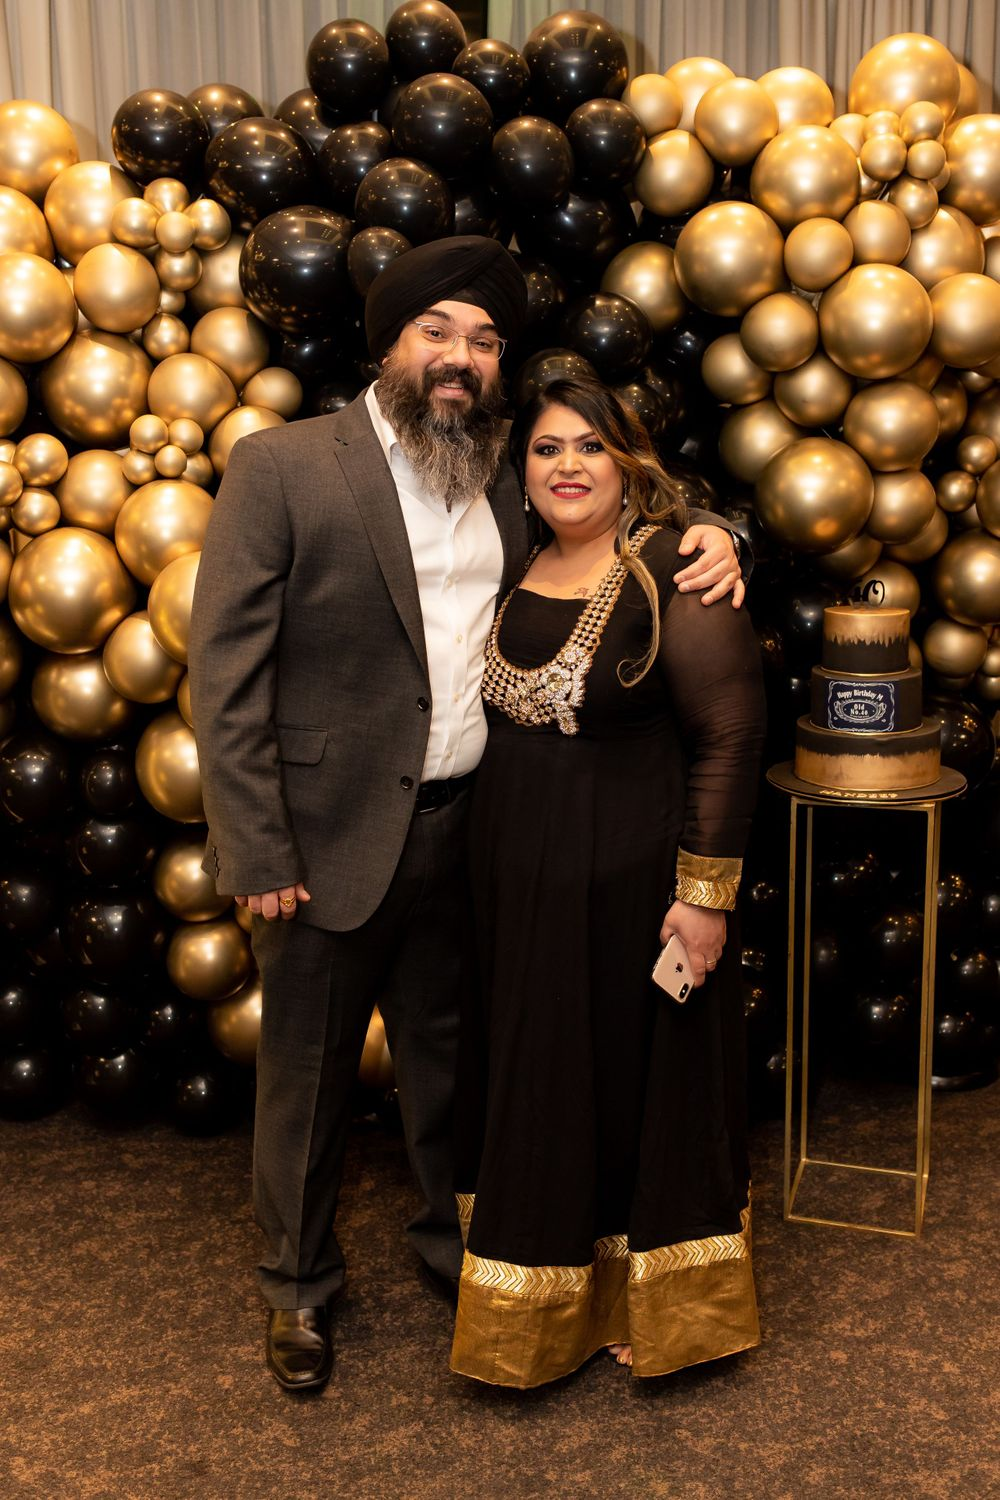 A Sikh couple wearing a black and gold sari stand in front of a balloon wall at 40th birthday party - Event Photography